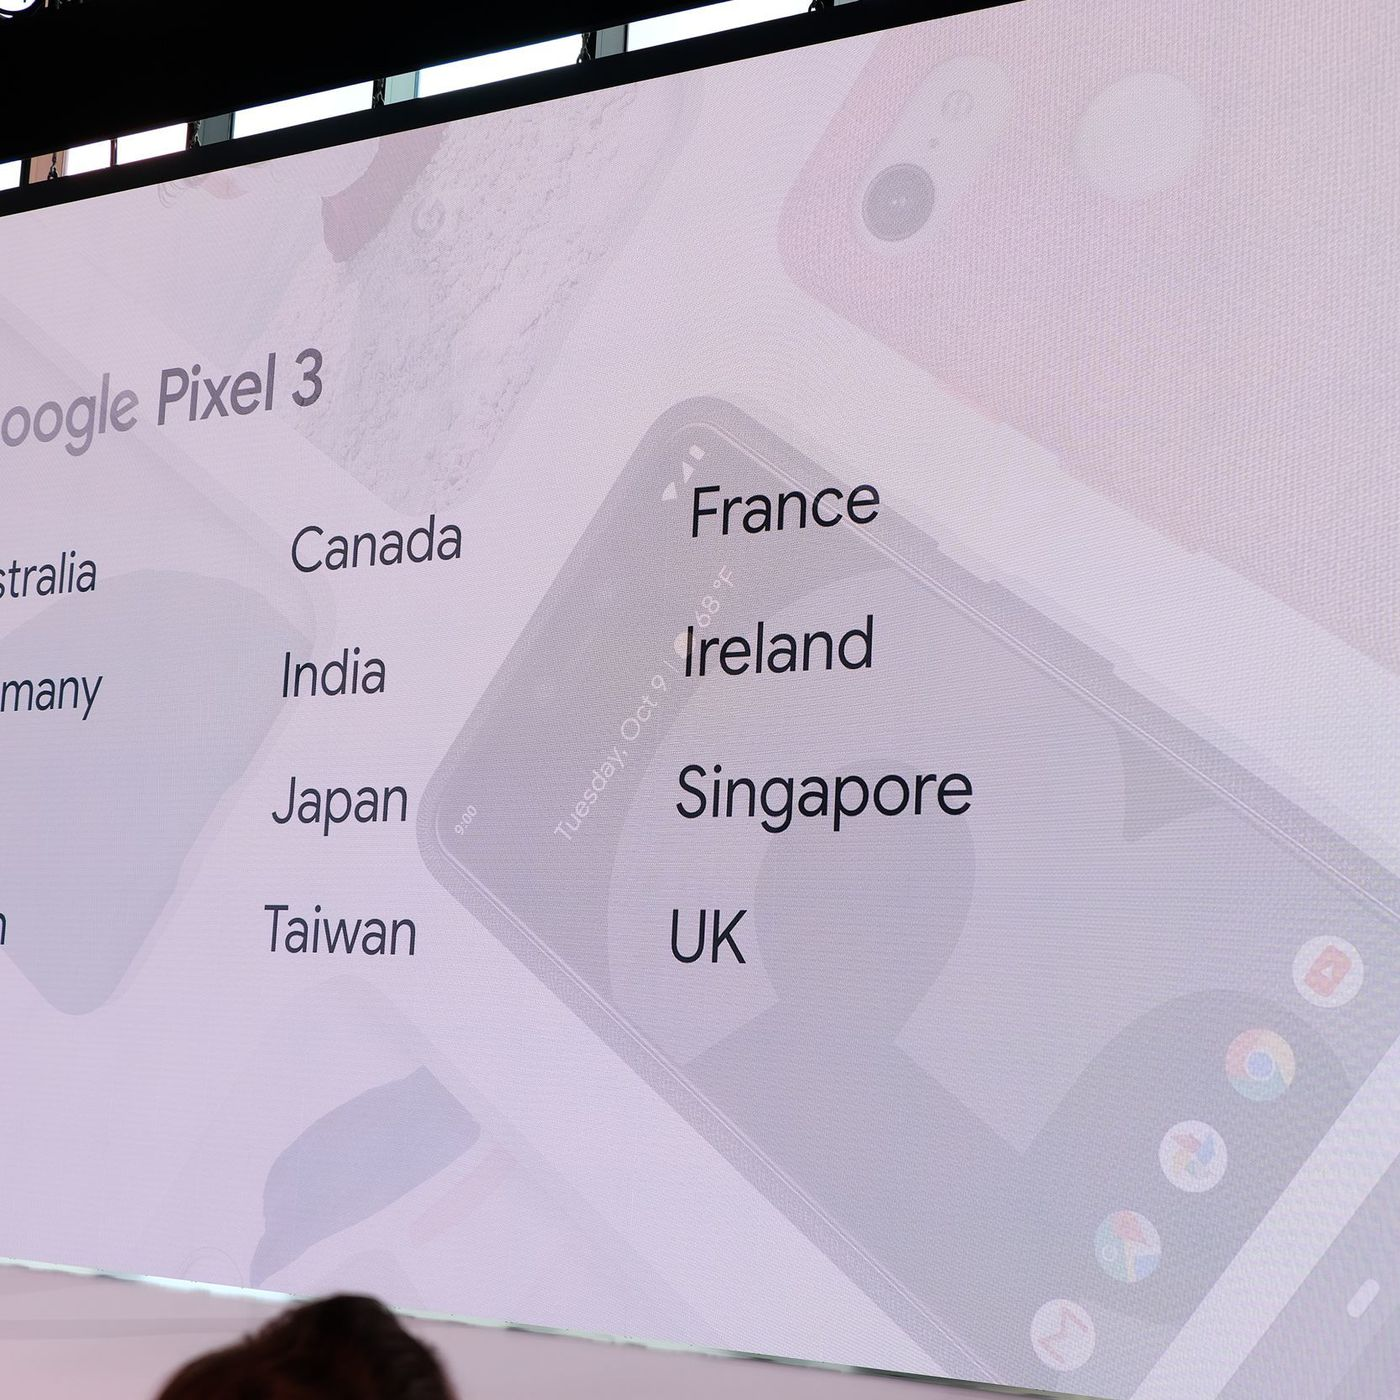 Google Pixel 3 availability: all the countries where you can